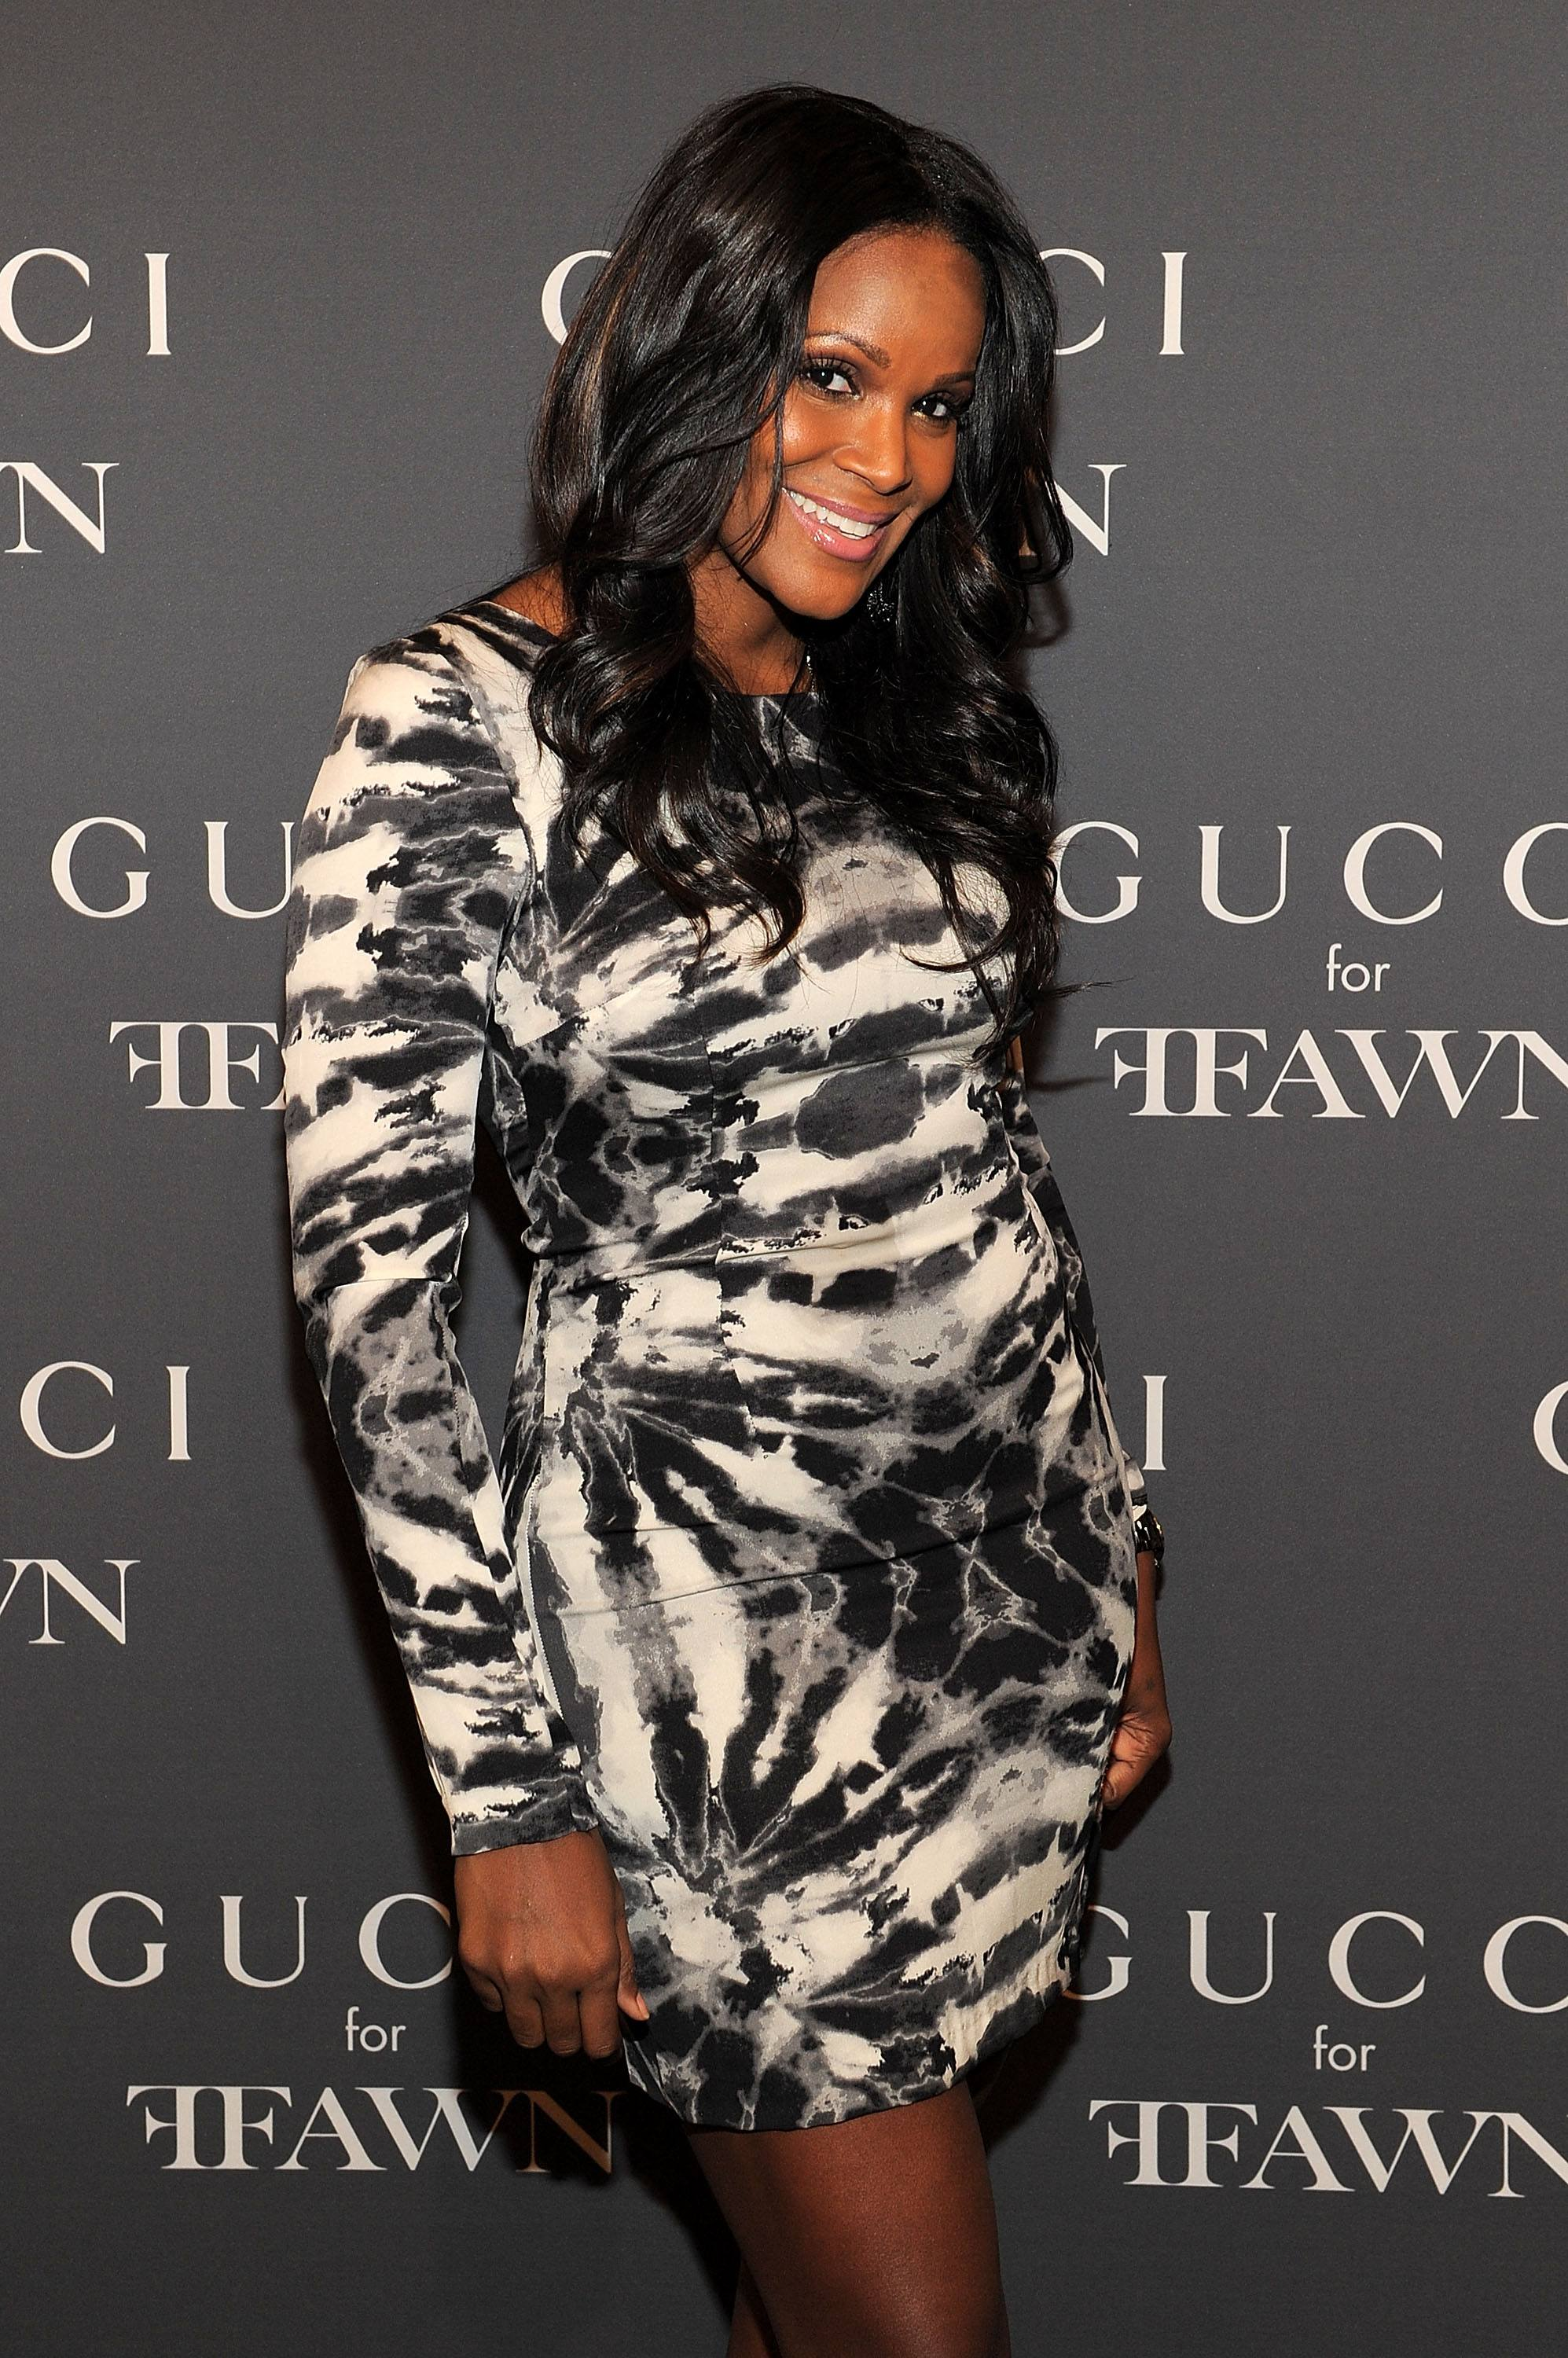 Tameka Foster attends the Gucci celebration of Fashion's Night Out at Gucci Fifth Avenue on September 10, 2010 in New York City.